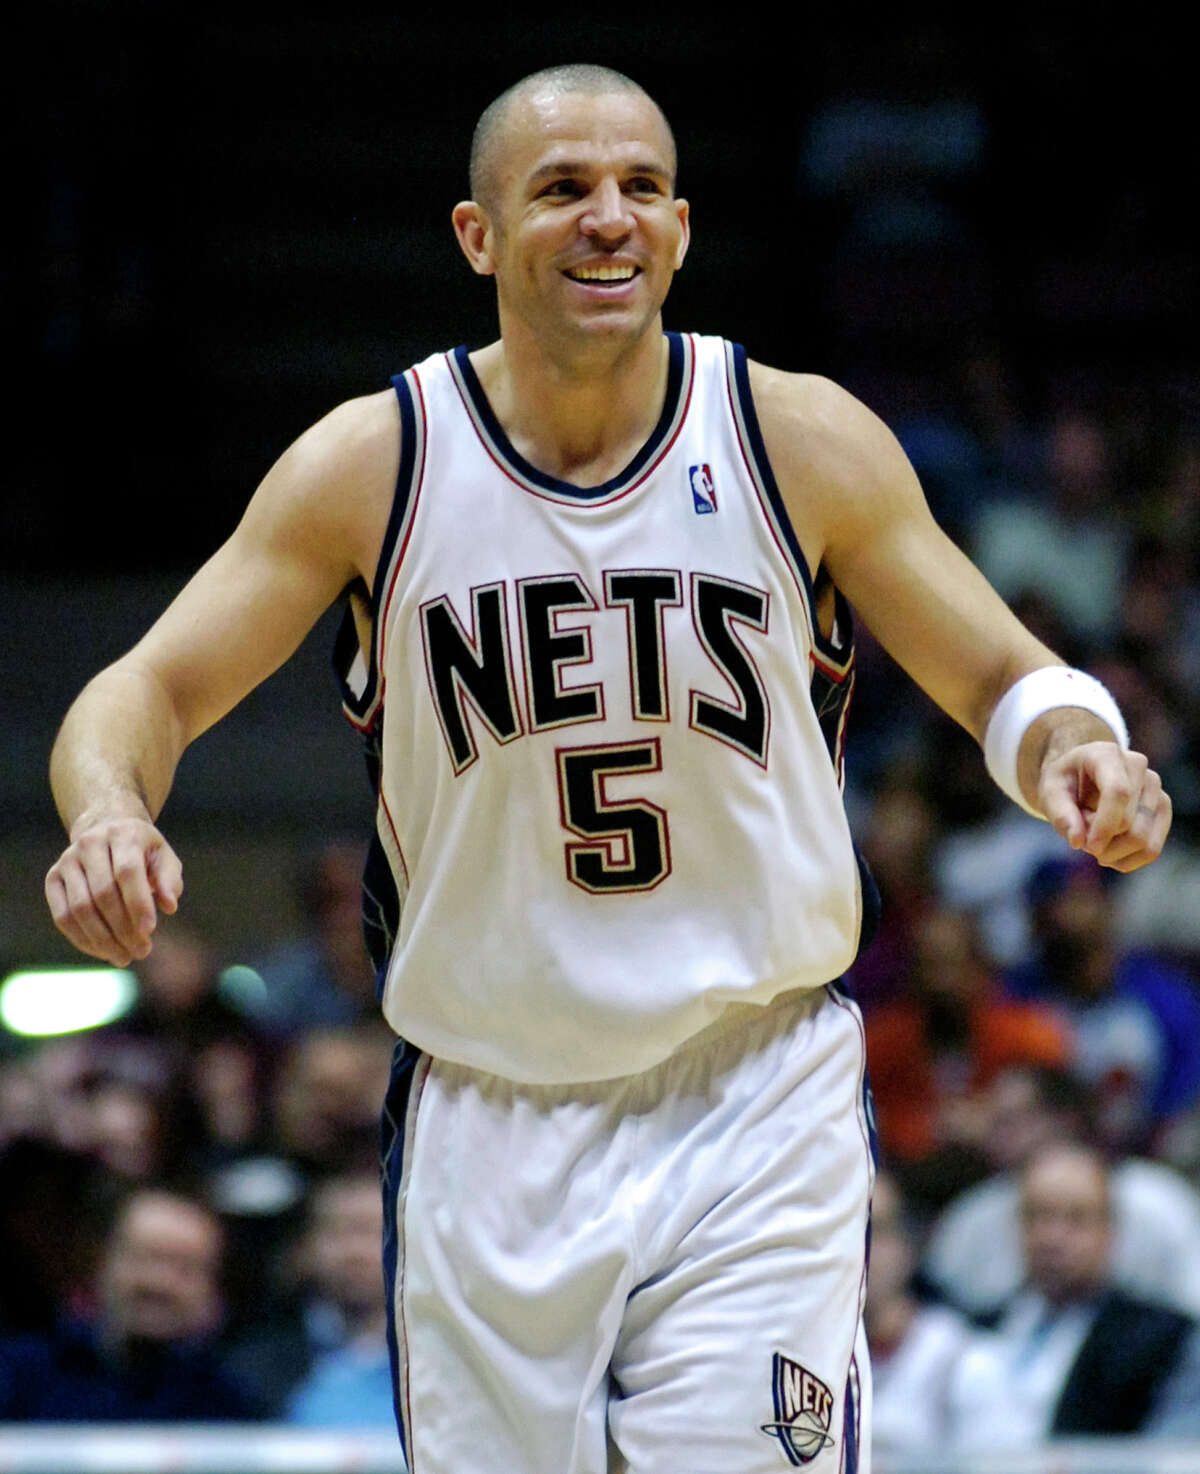 FILE - In this April 13, 2007, file photo, then-New Jersey Nets' Jason Kidd reacts during an NBA basketball game in East Rutherford, N.J. The Brooklyn Nets hired Jason Kidd as their coach Wednesday, June 12, 2013, bringing the former star back to the franchise he led to its greatest NBA success. (AP Photo/Bill Kostroun, File)